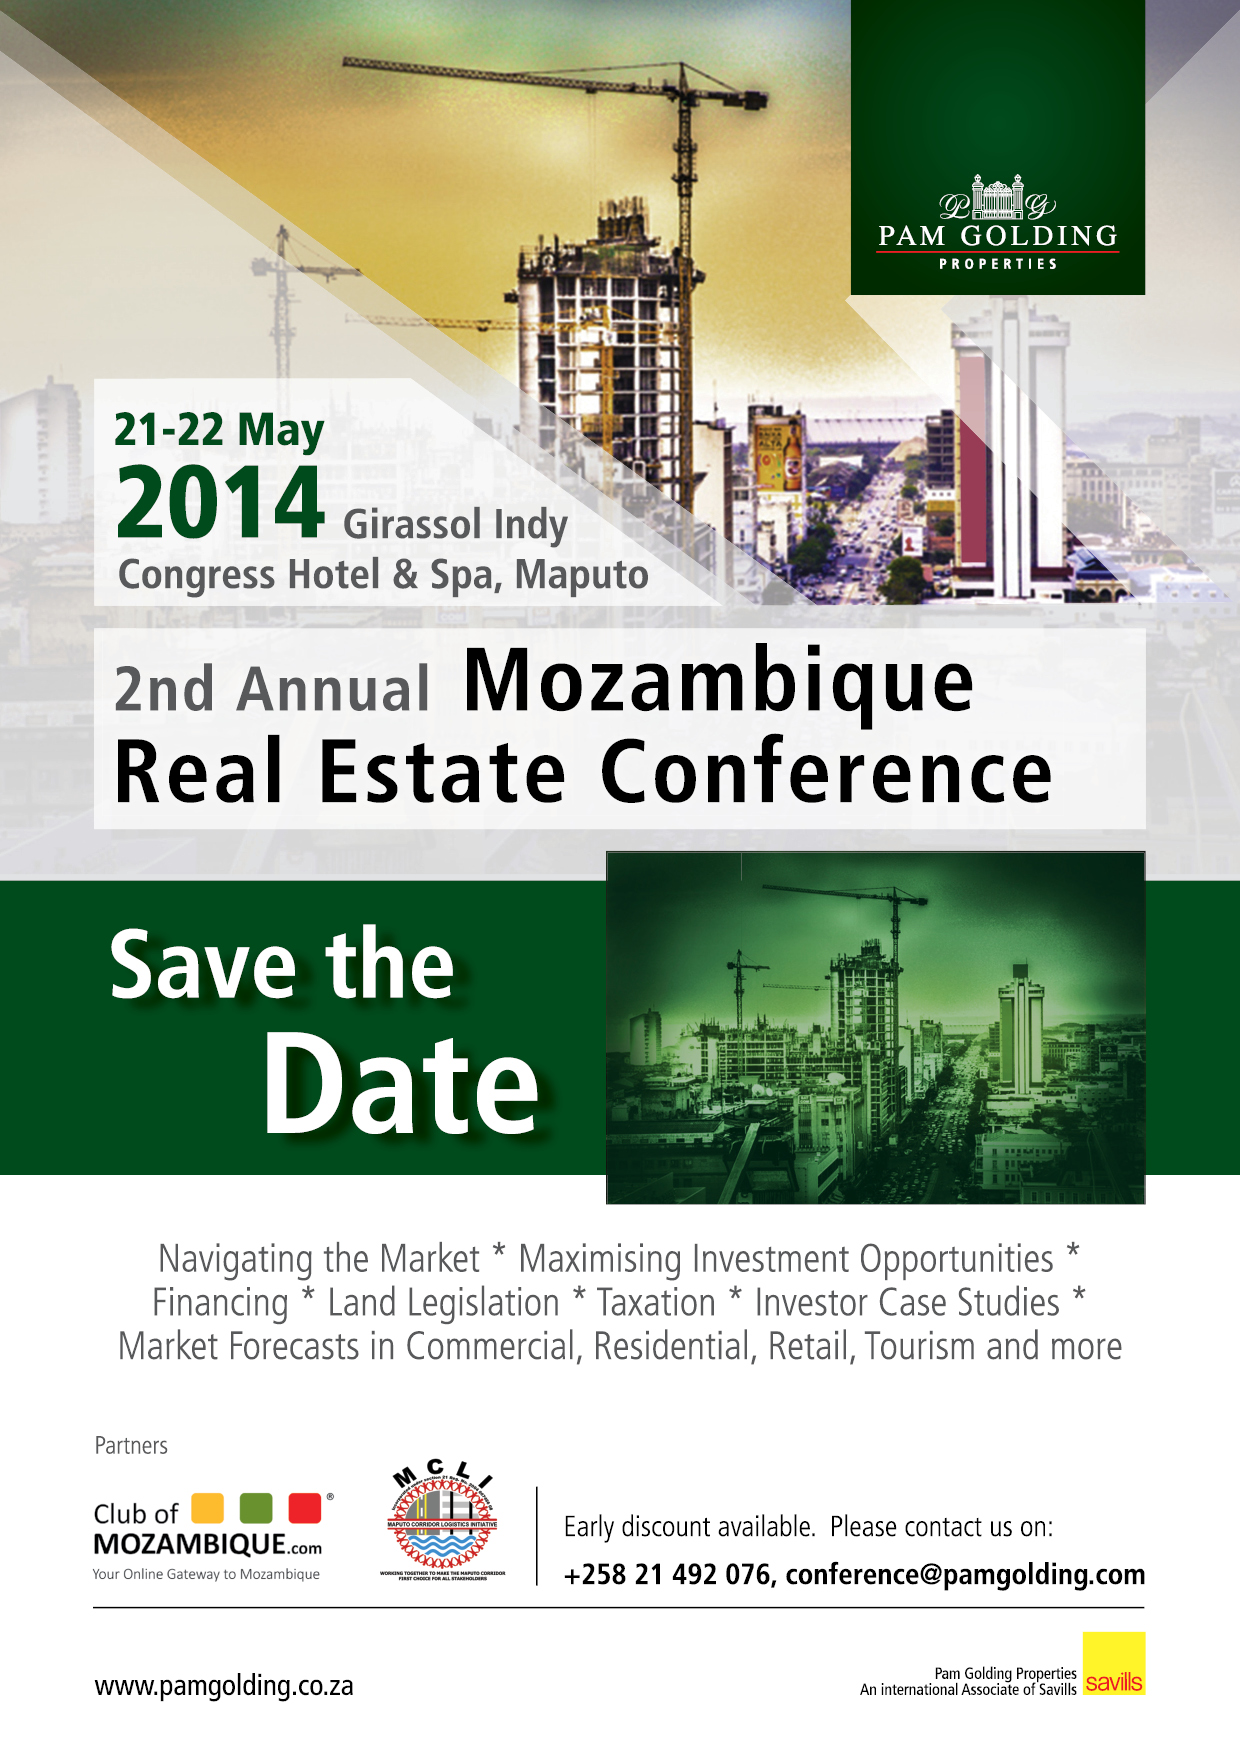 2nd Annual Mozambique Real Estate Conference